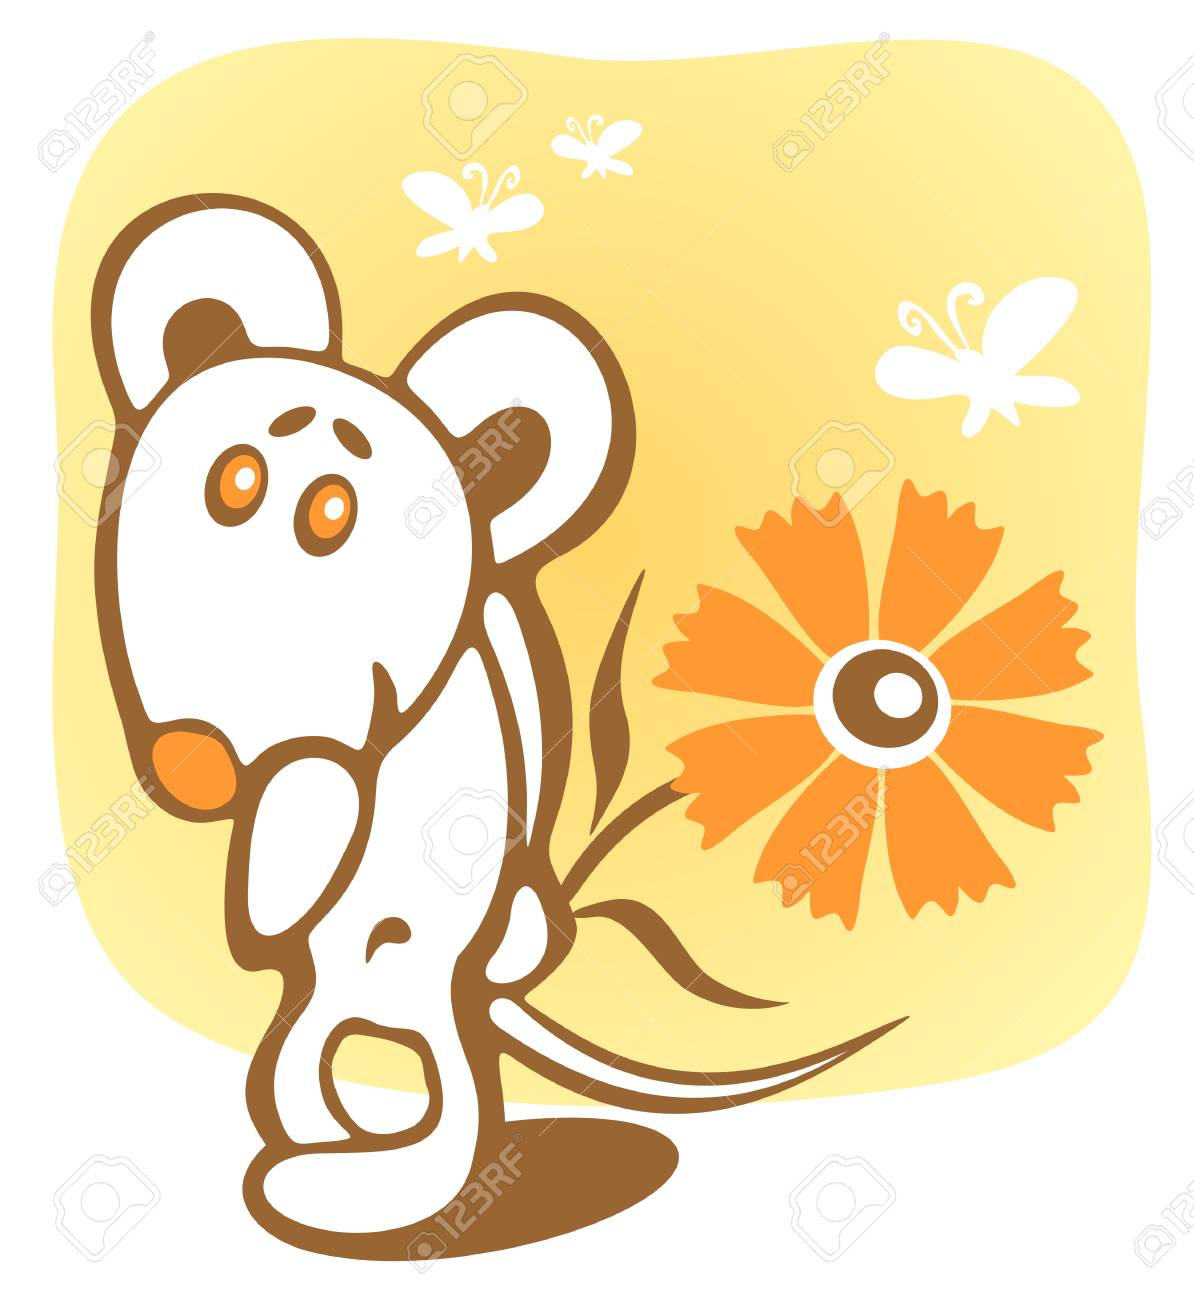 Cheerful mouse and flower on a yellow background. Stock Vector - 3183312